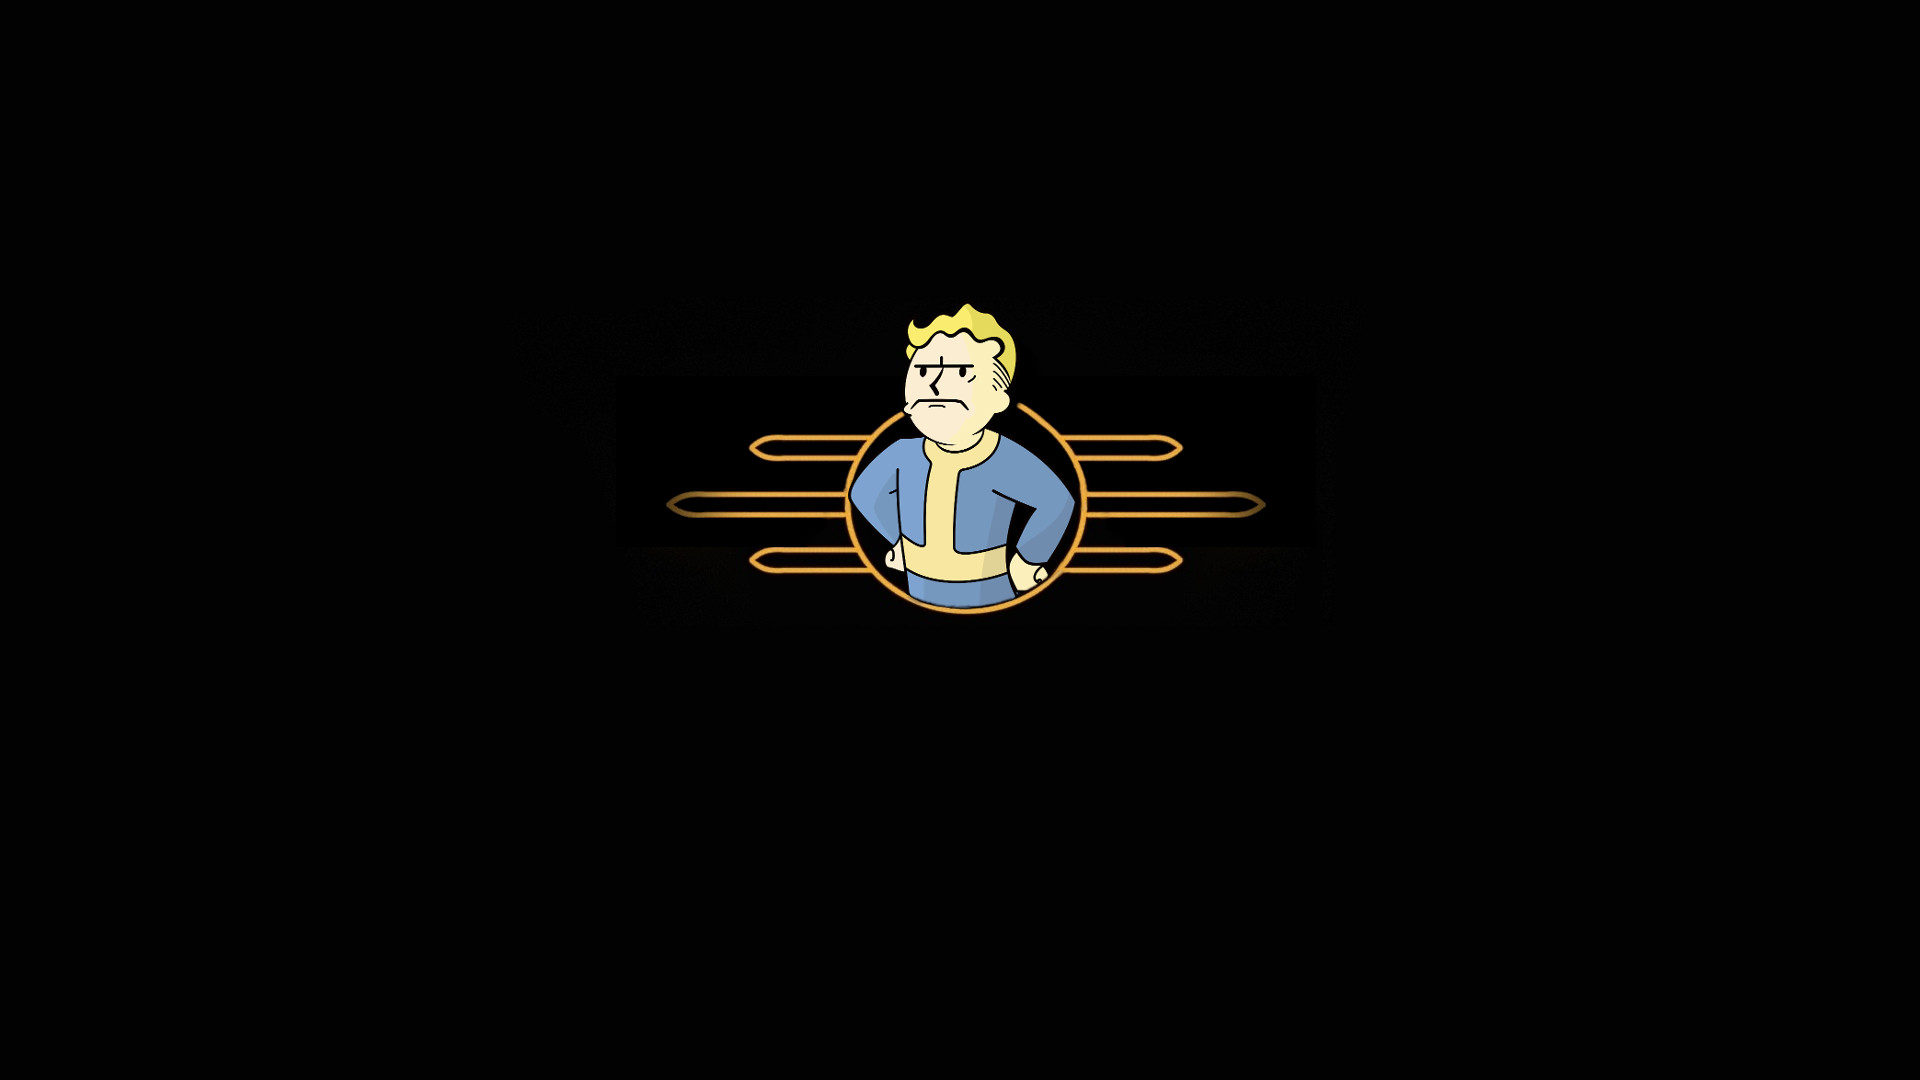 … fallout wallpapers hd desktop and mobile backgrounds …